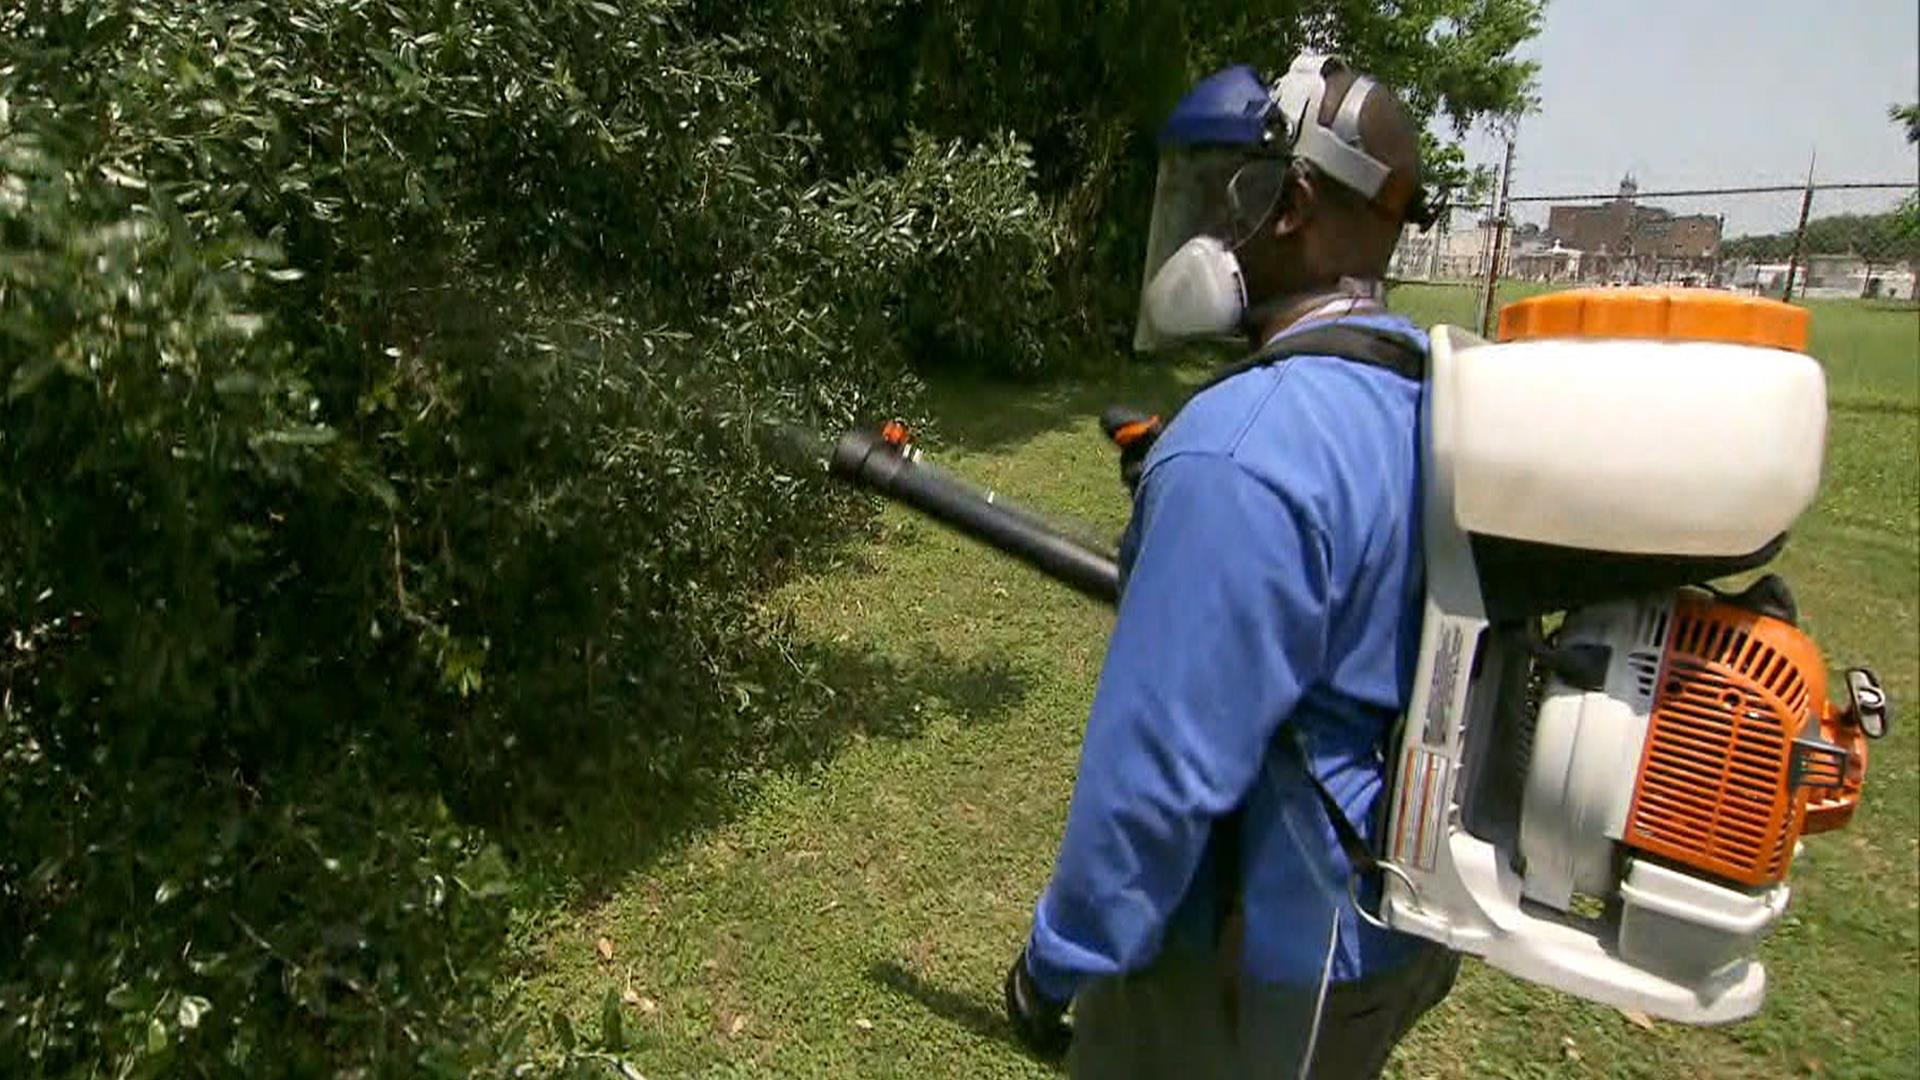 Is Zika spreading in Florida? New report might link more cases to Miami